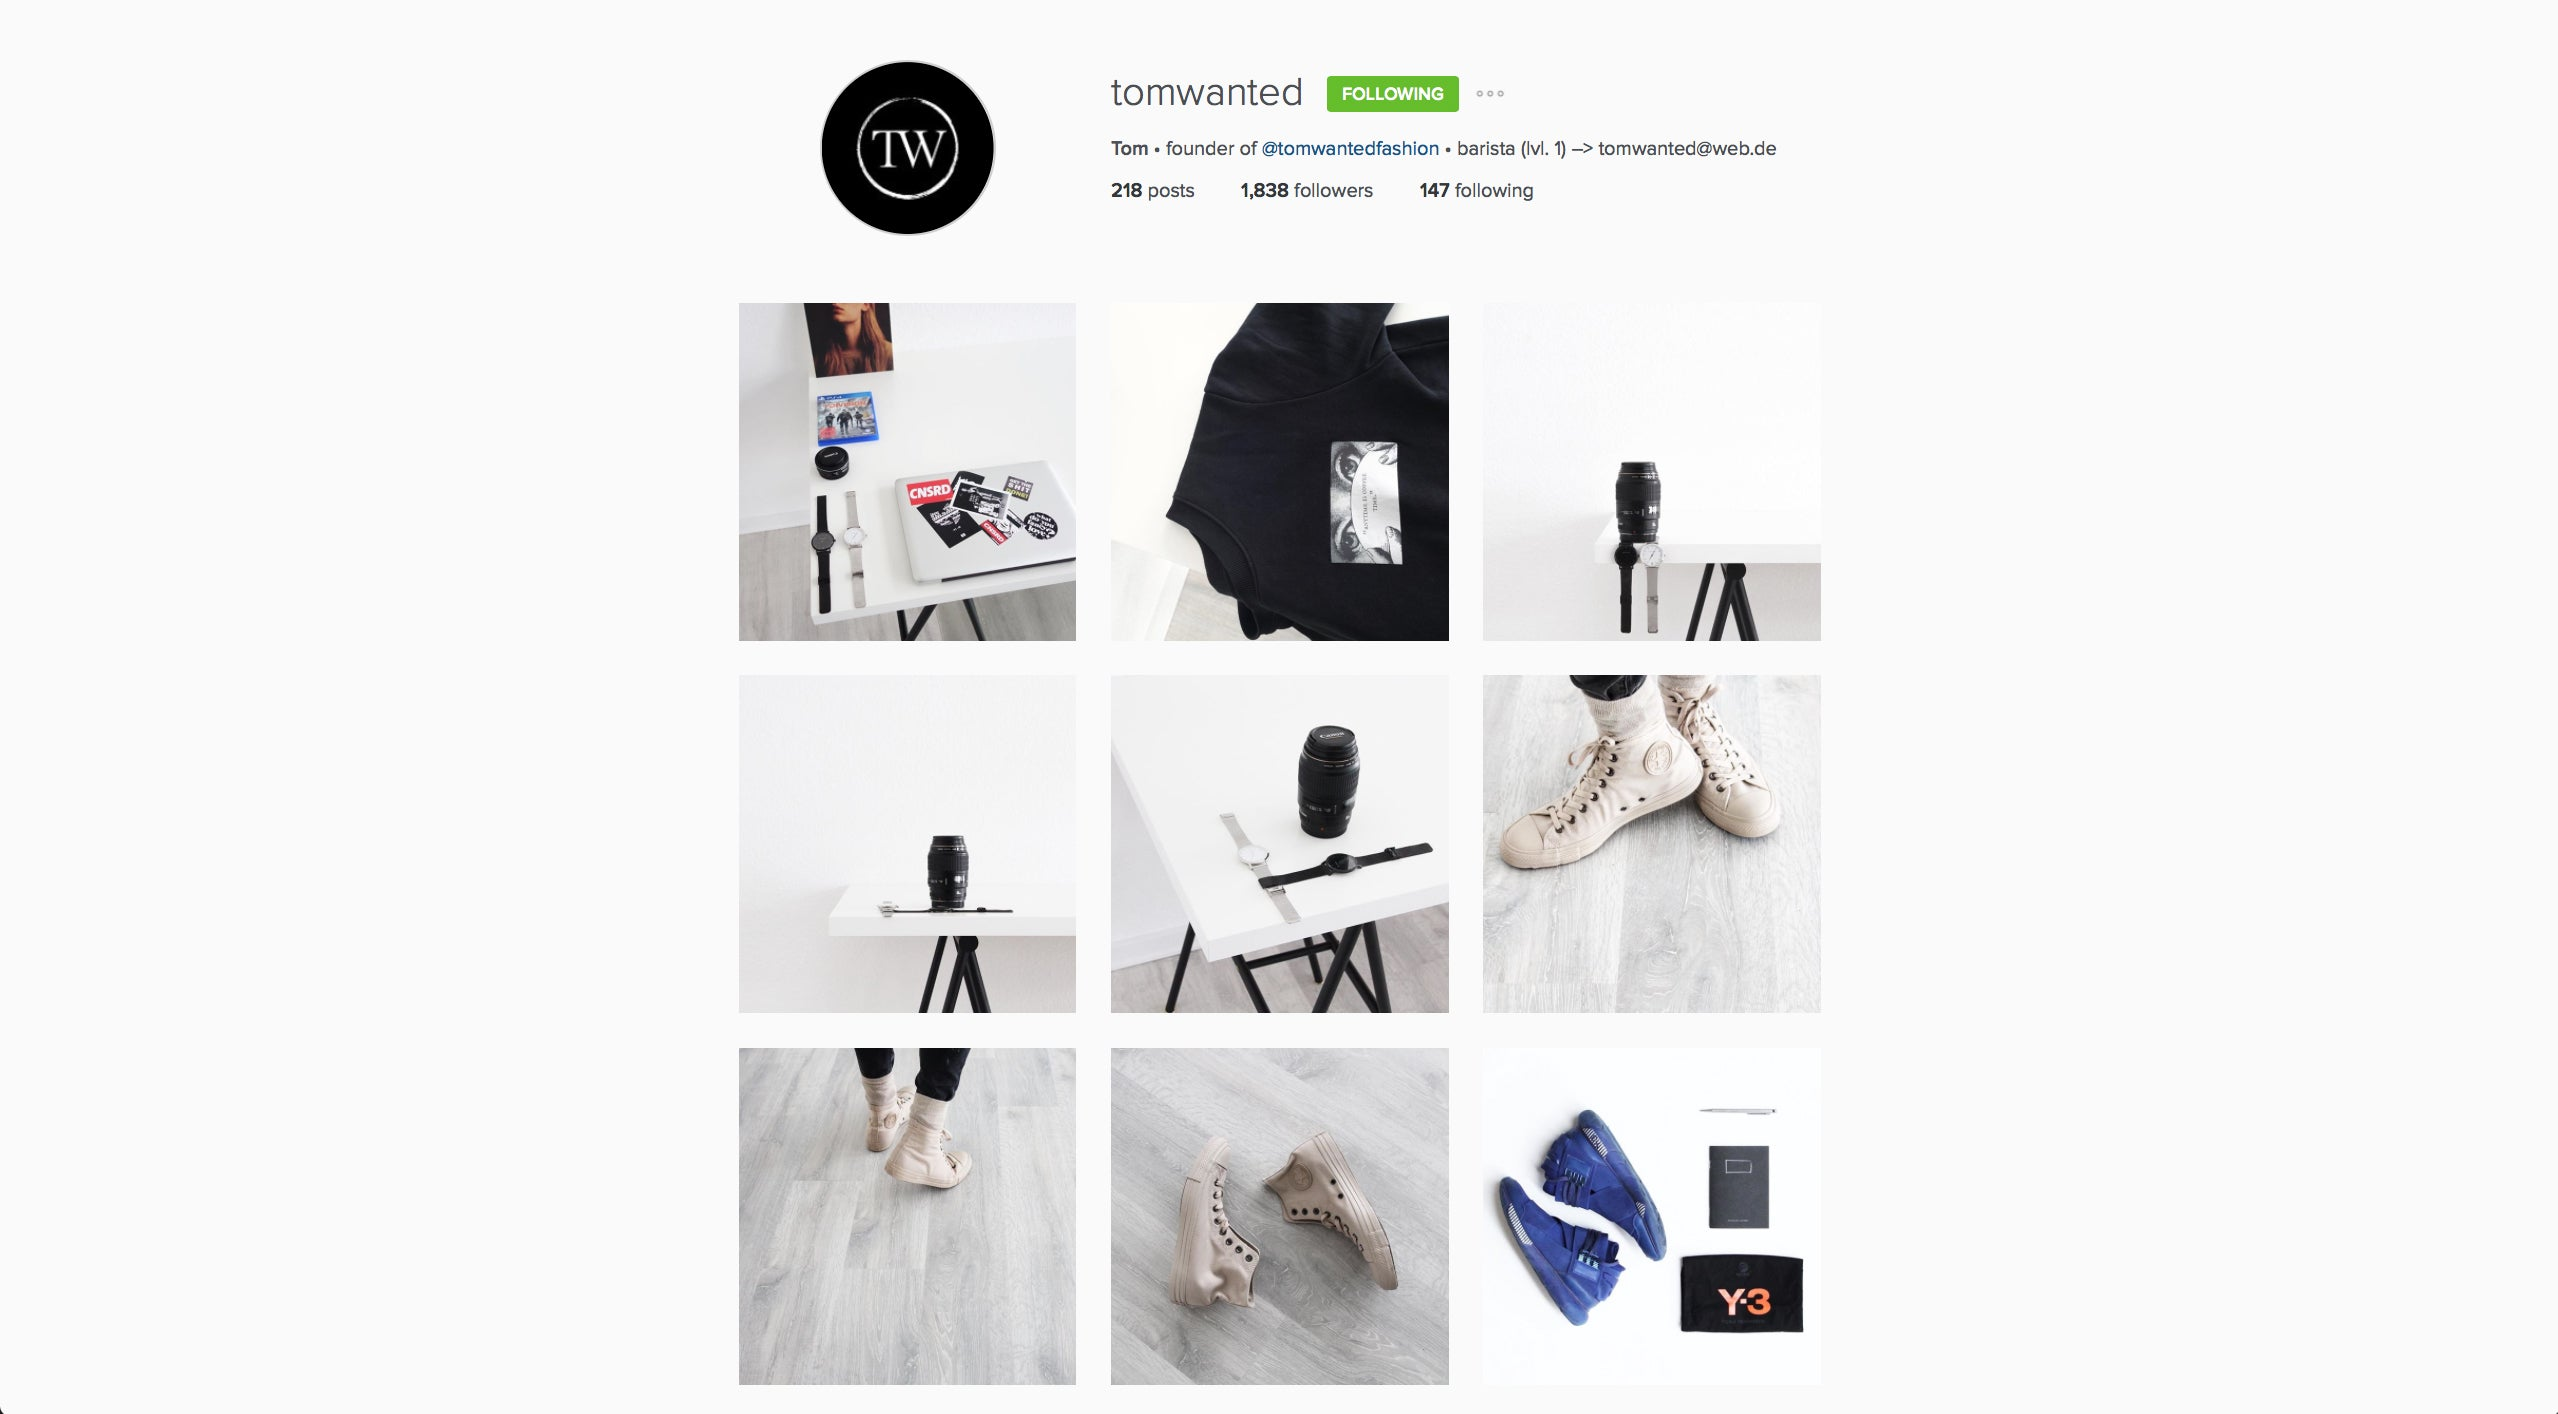 Tom Wanted x Avid & Co. Instagram Account of the week